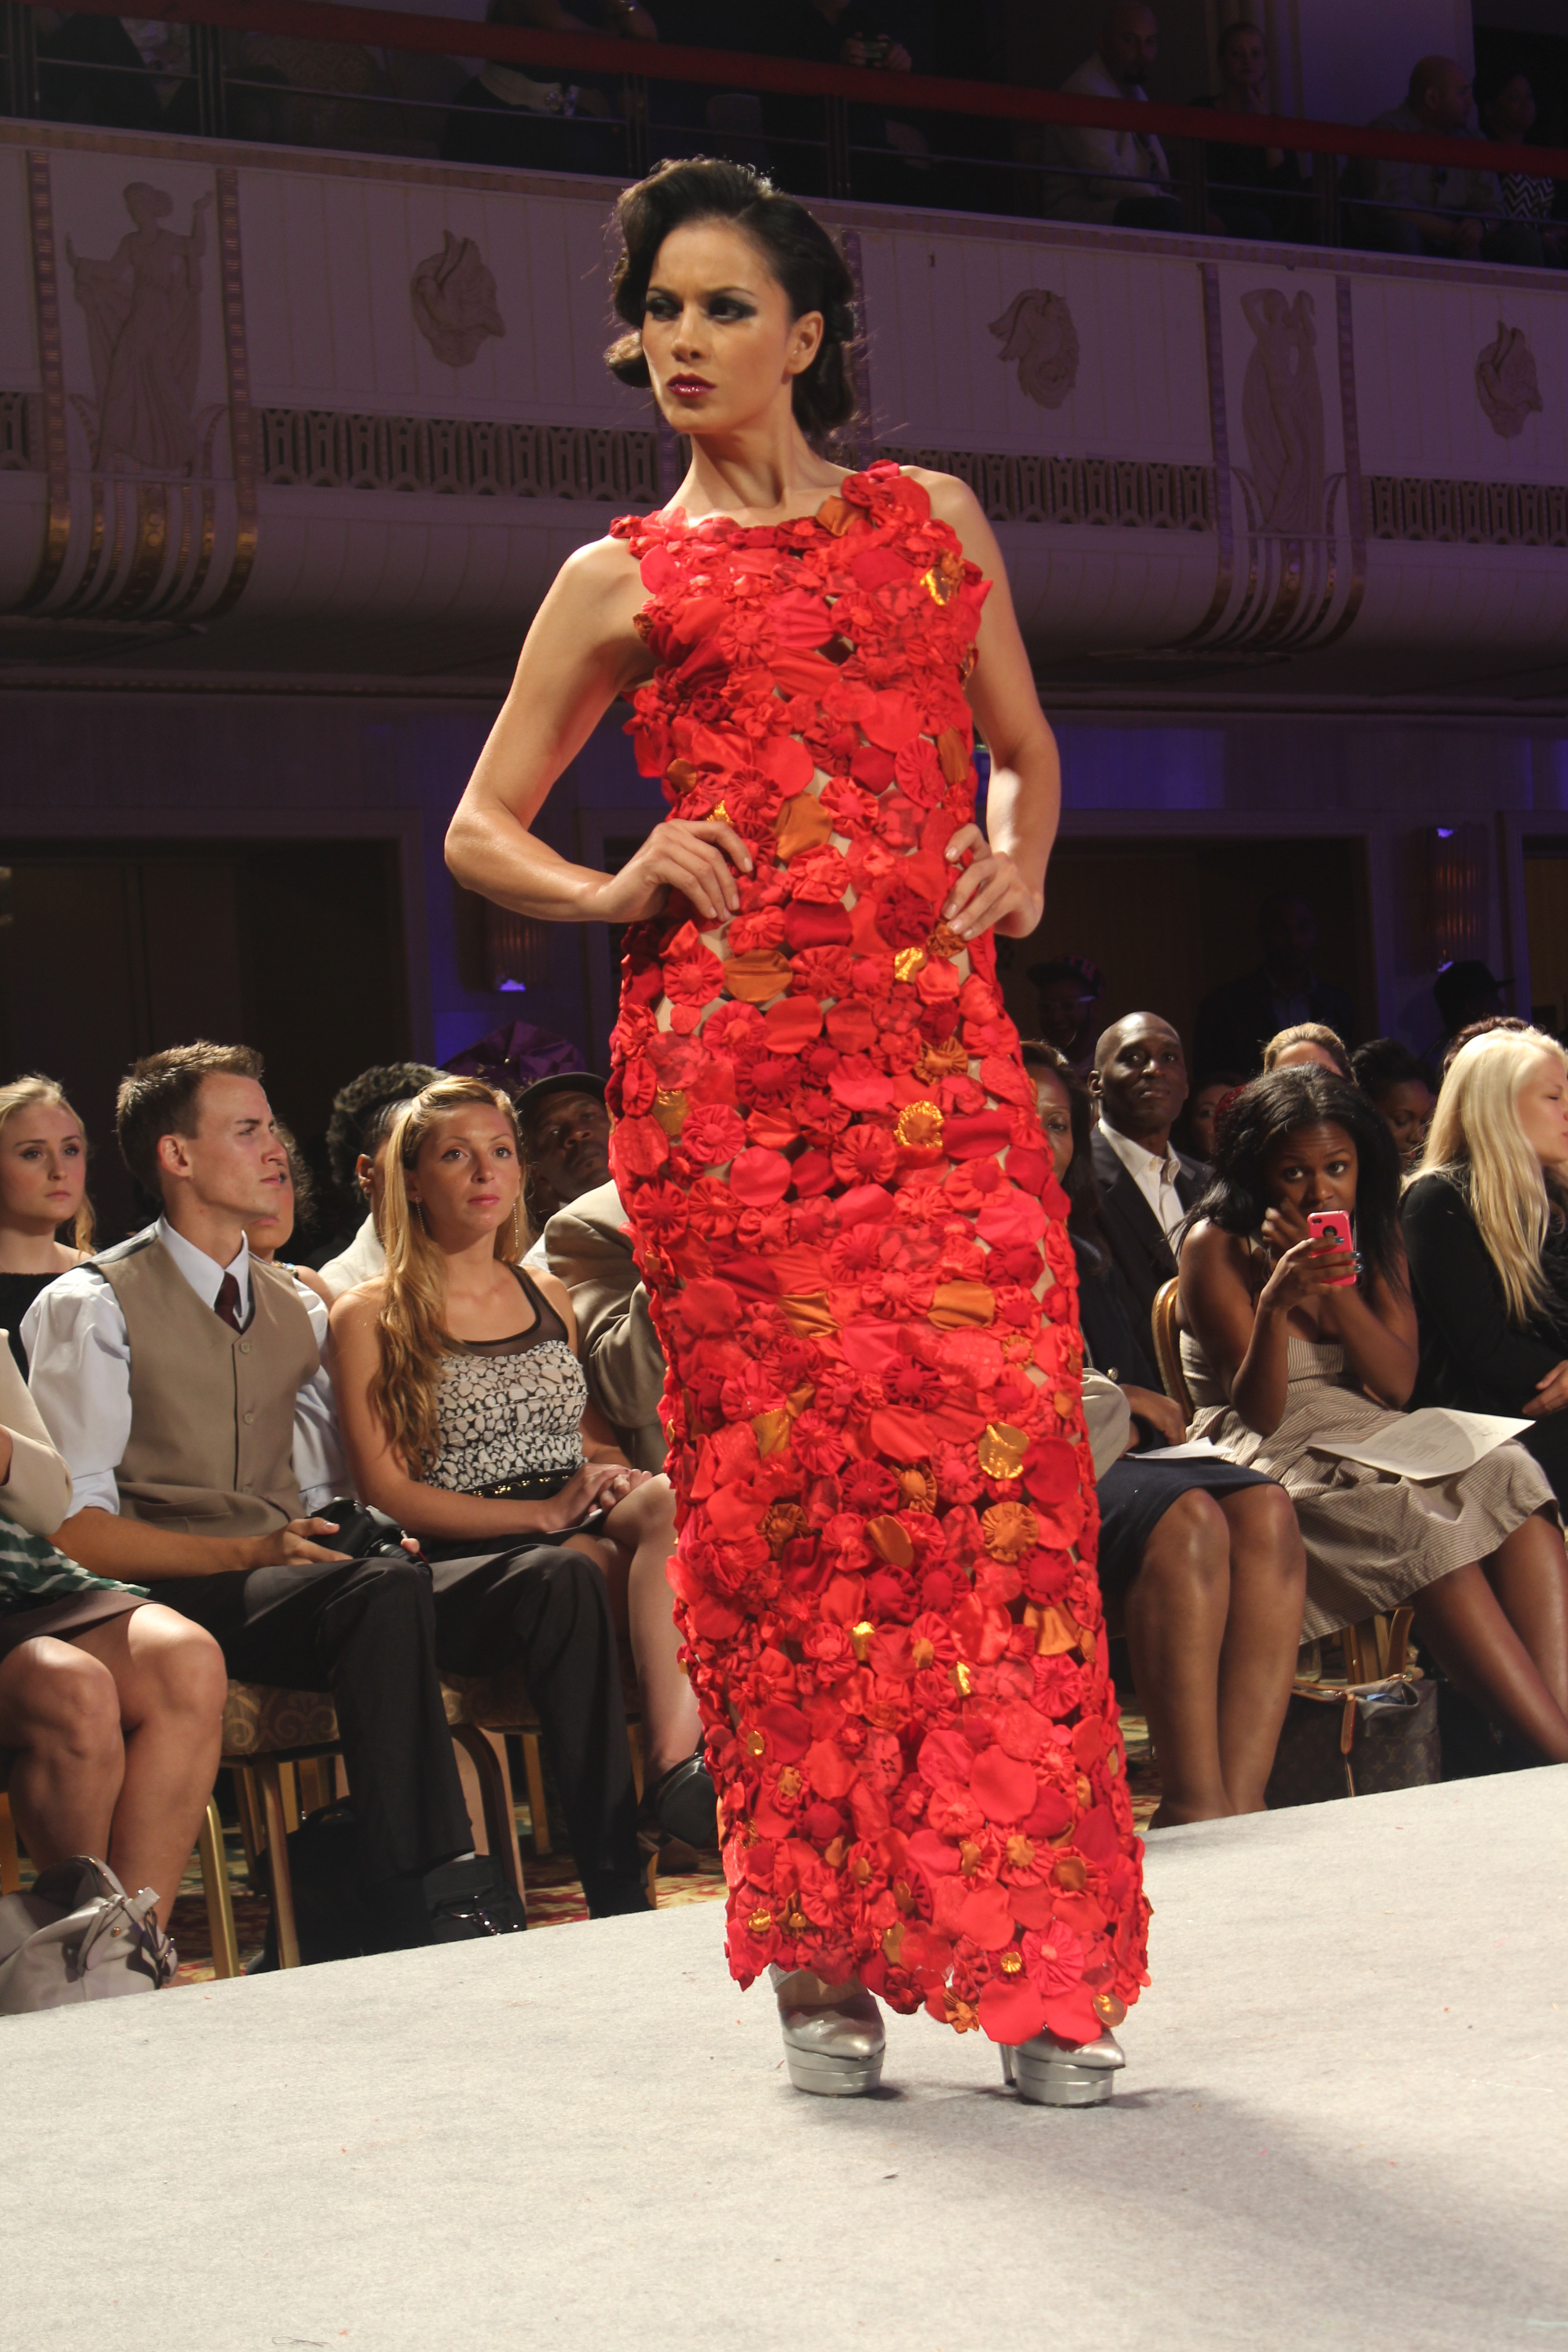 Tiffany Mccall Couture Laureluxe Metal Coutur Jorge Afanador Ss13 Collections